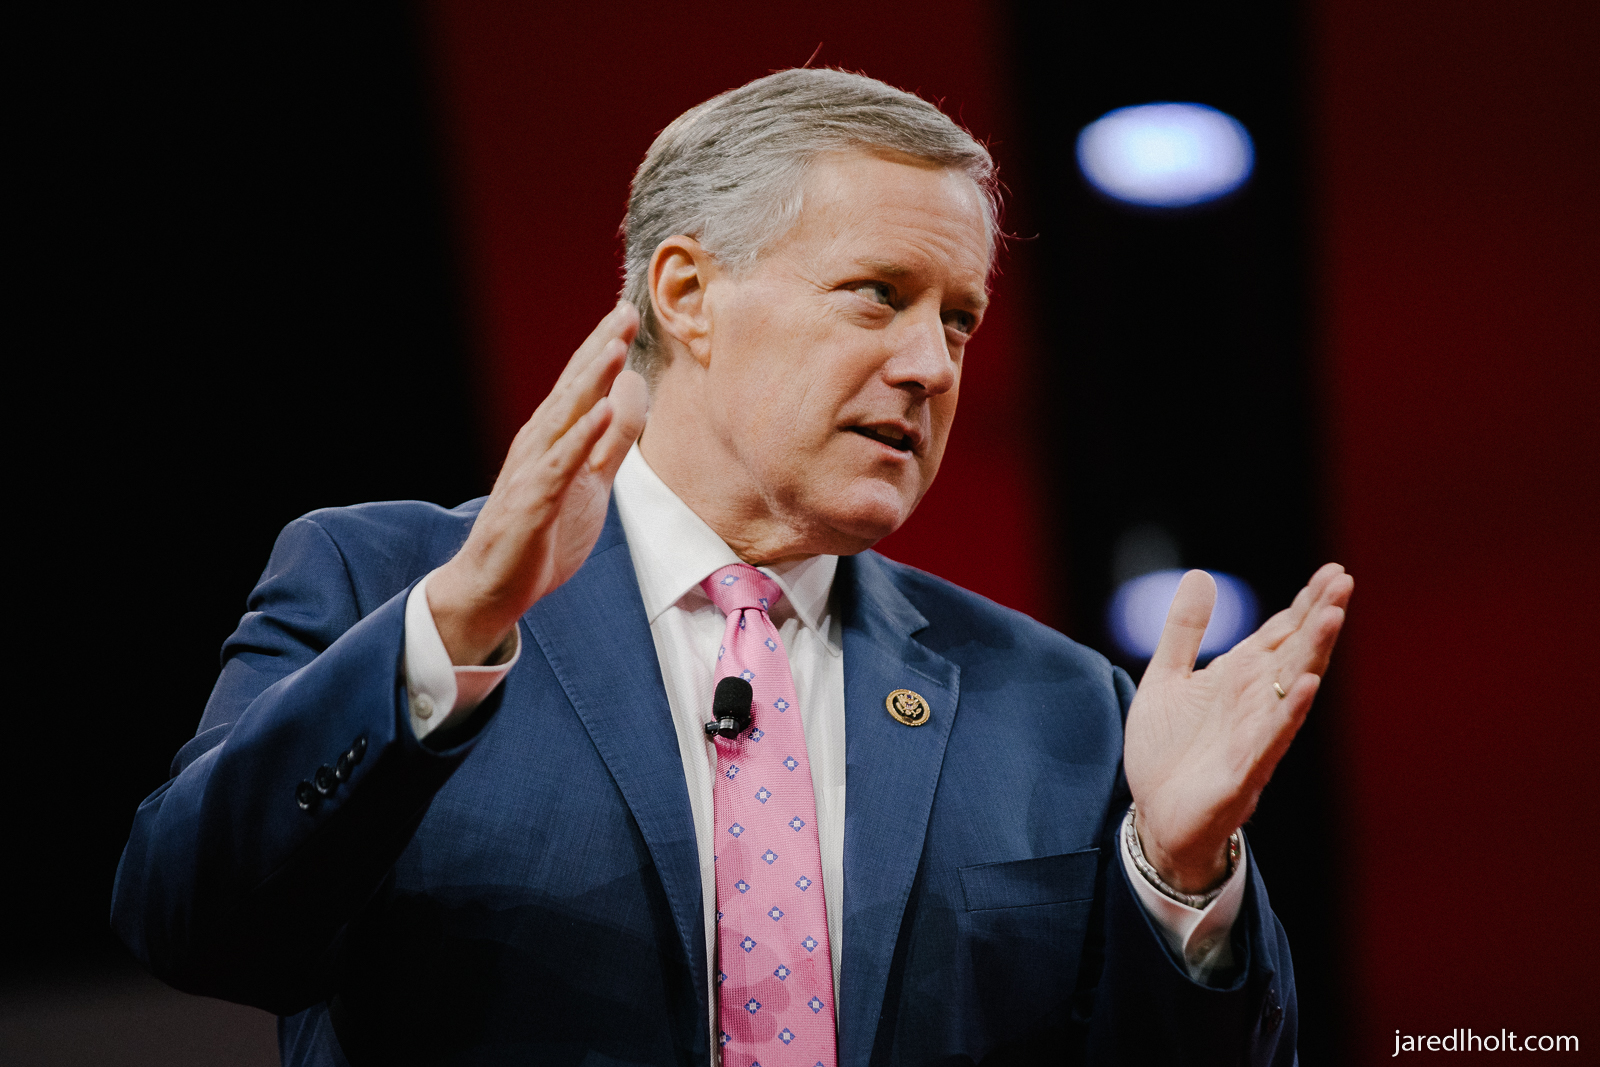 Rep. Mark Meadows of North Carolina